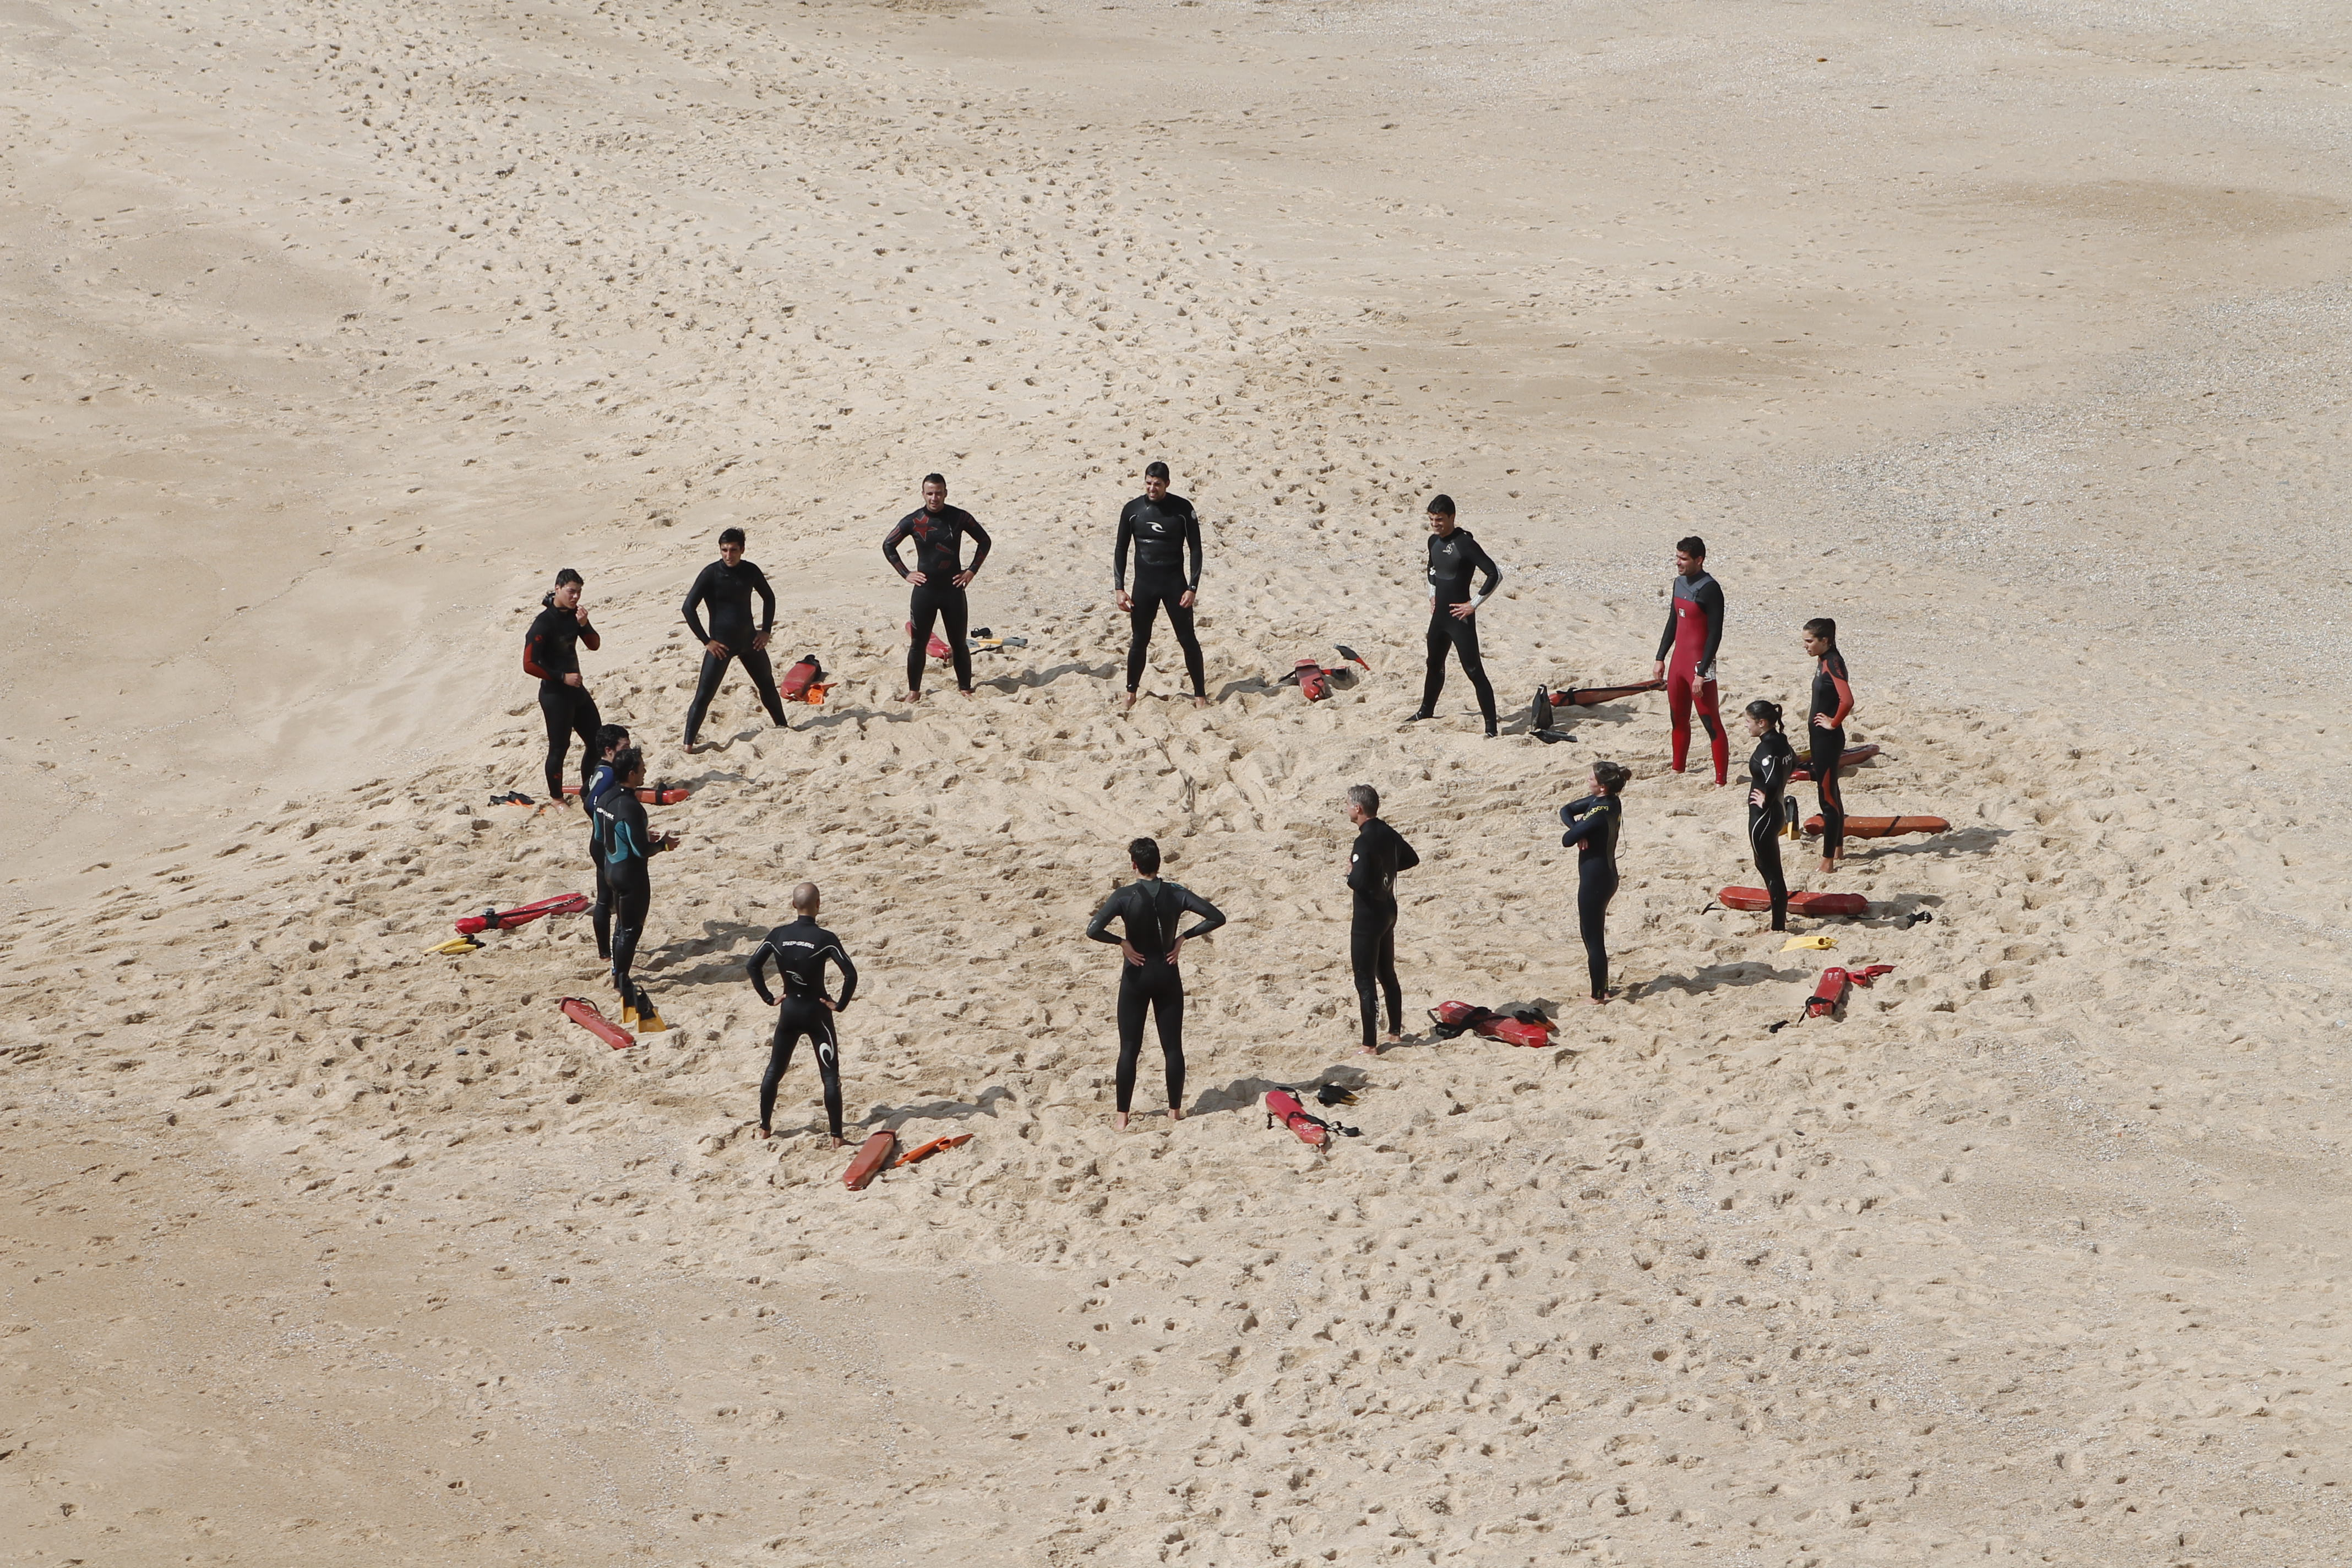 Lifeguards-in-wetsuits-learning-on-the-beach